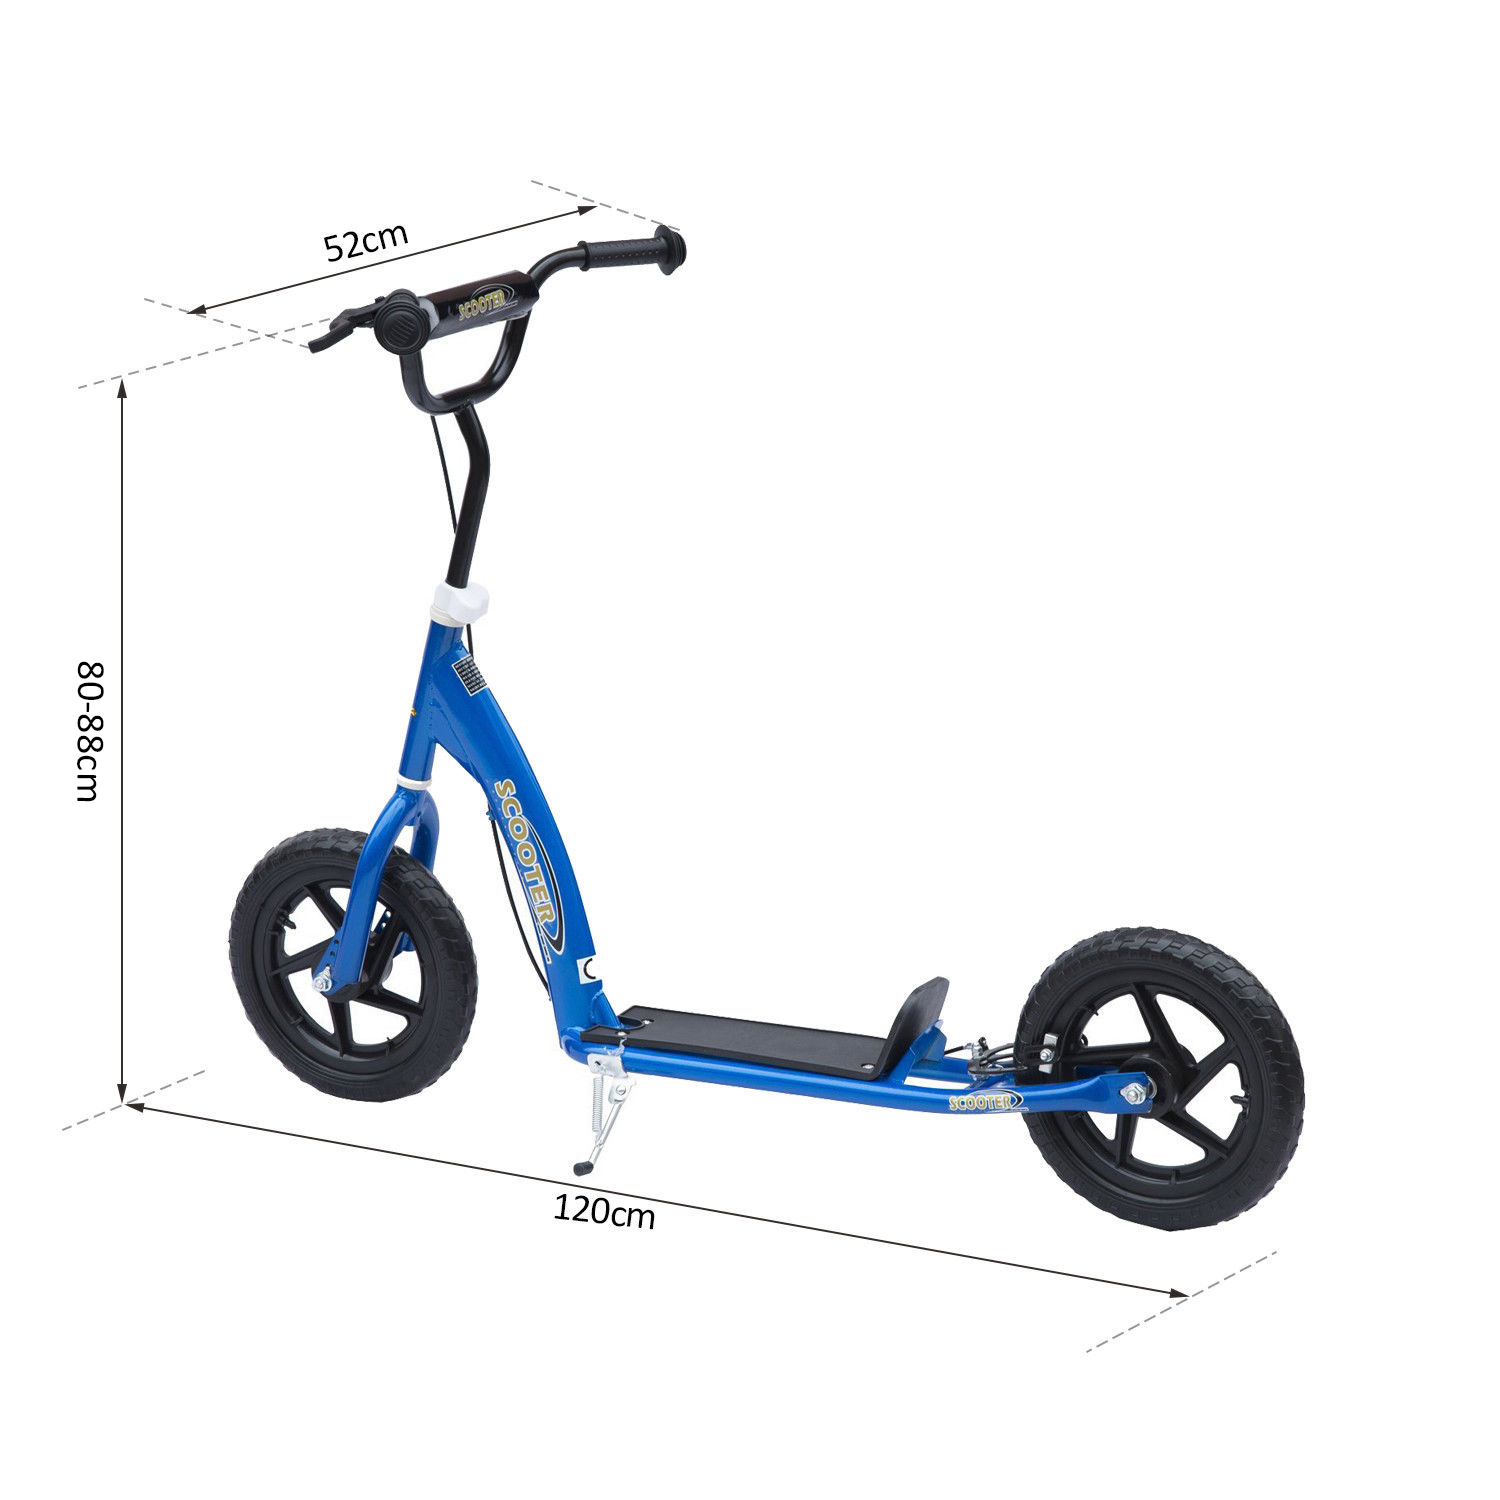 HOMCOM-4-Colours-Push-Scooter-Teen-Kids-Children-Stunt-Bike-Ride-On thumbnail 20